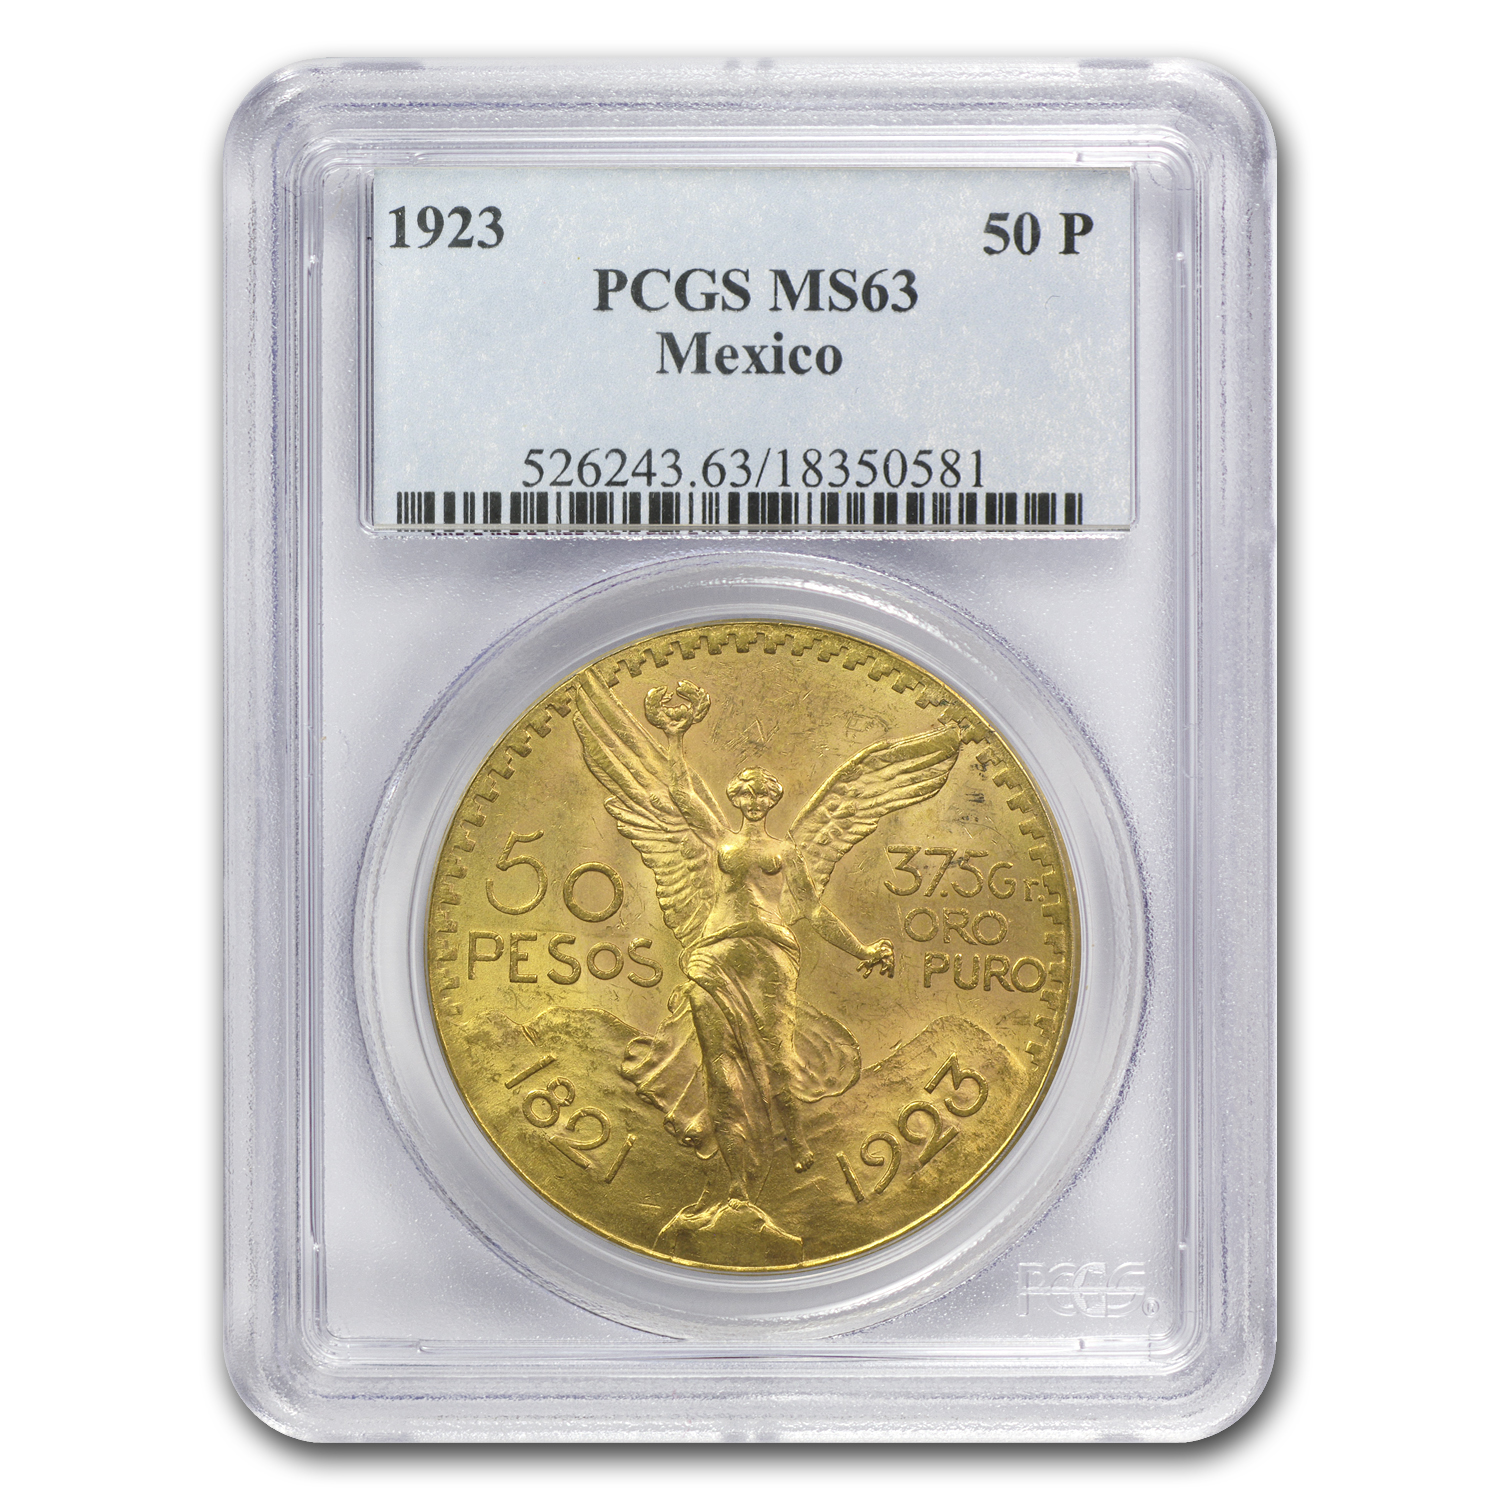 Mexico 1923 50 Pesos Gold MS-63 PCGS